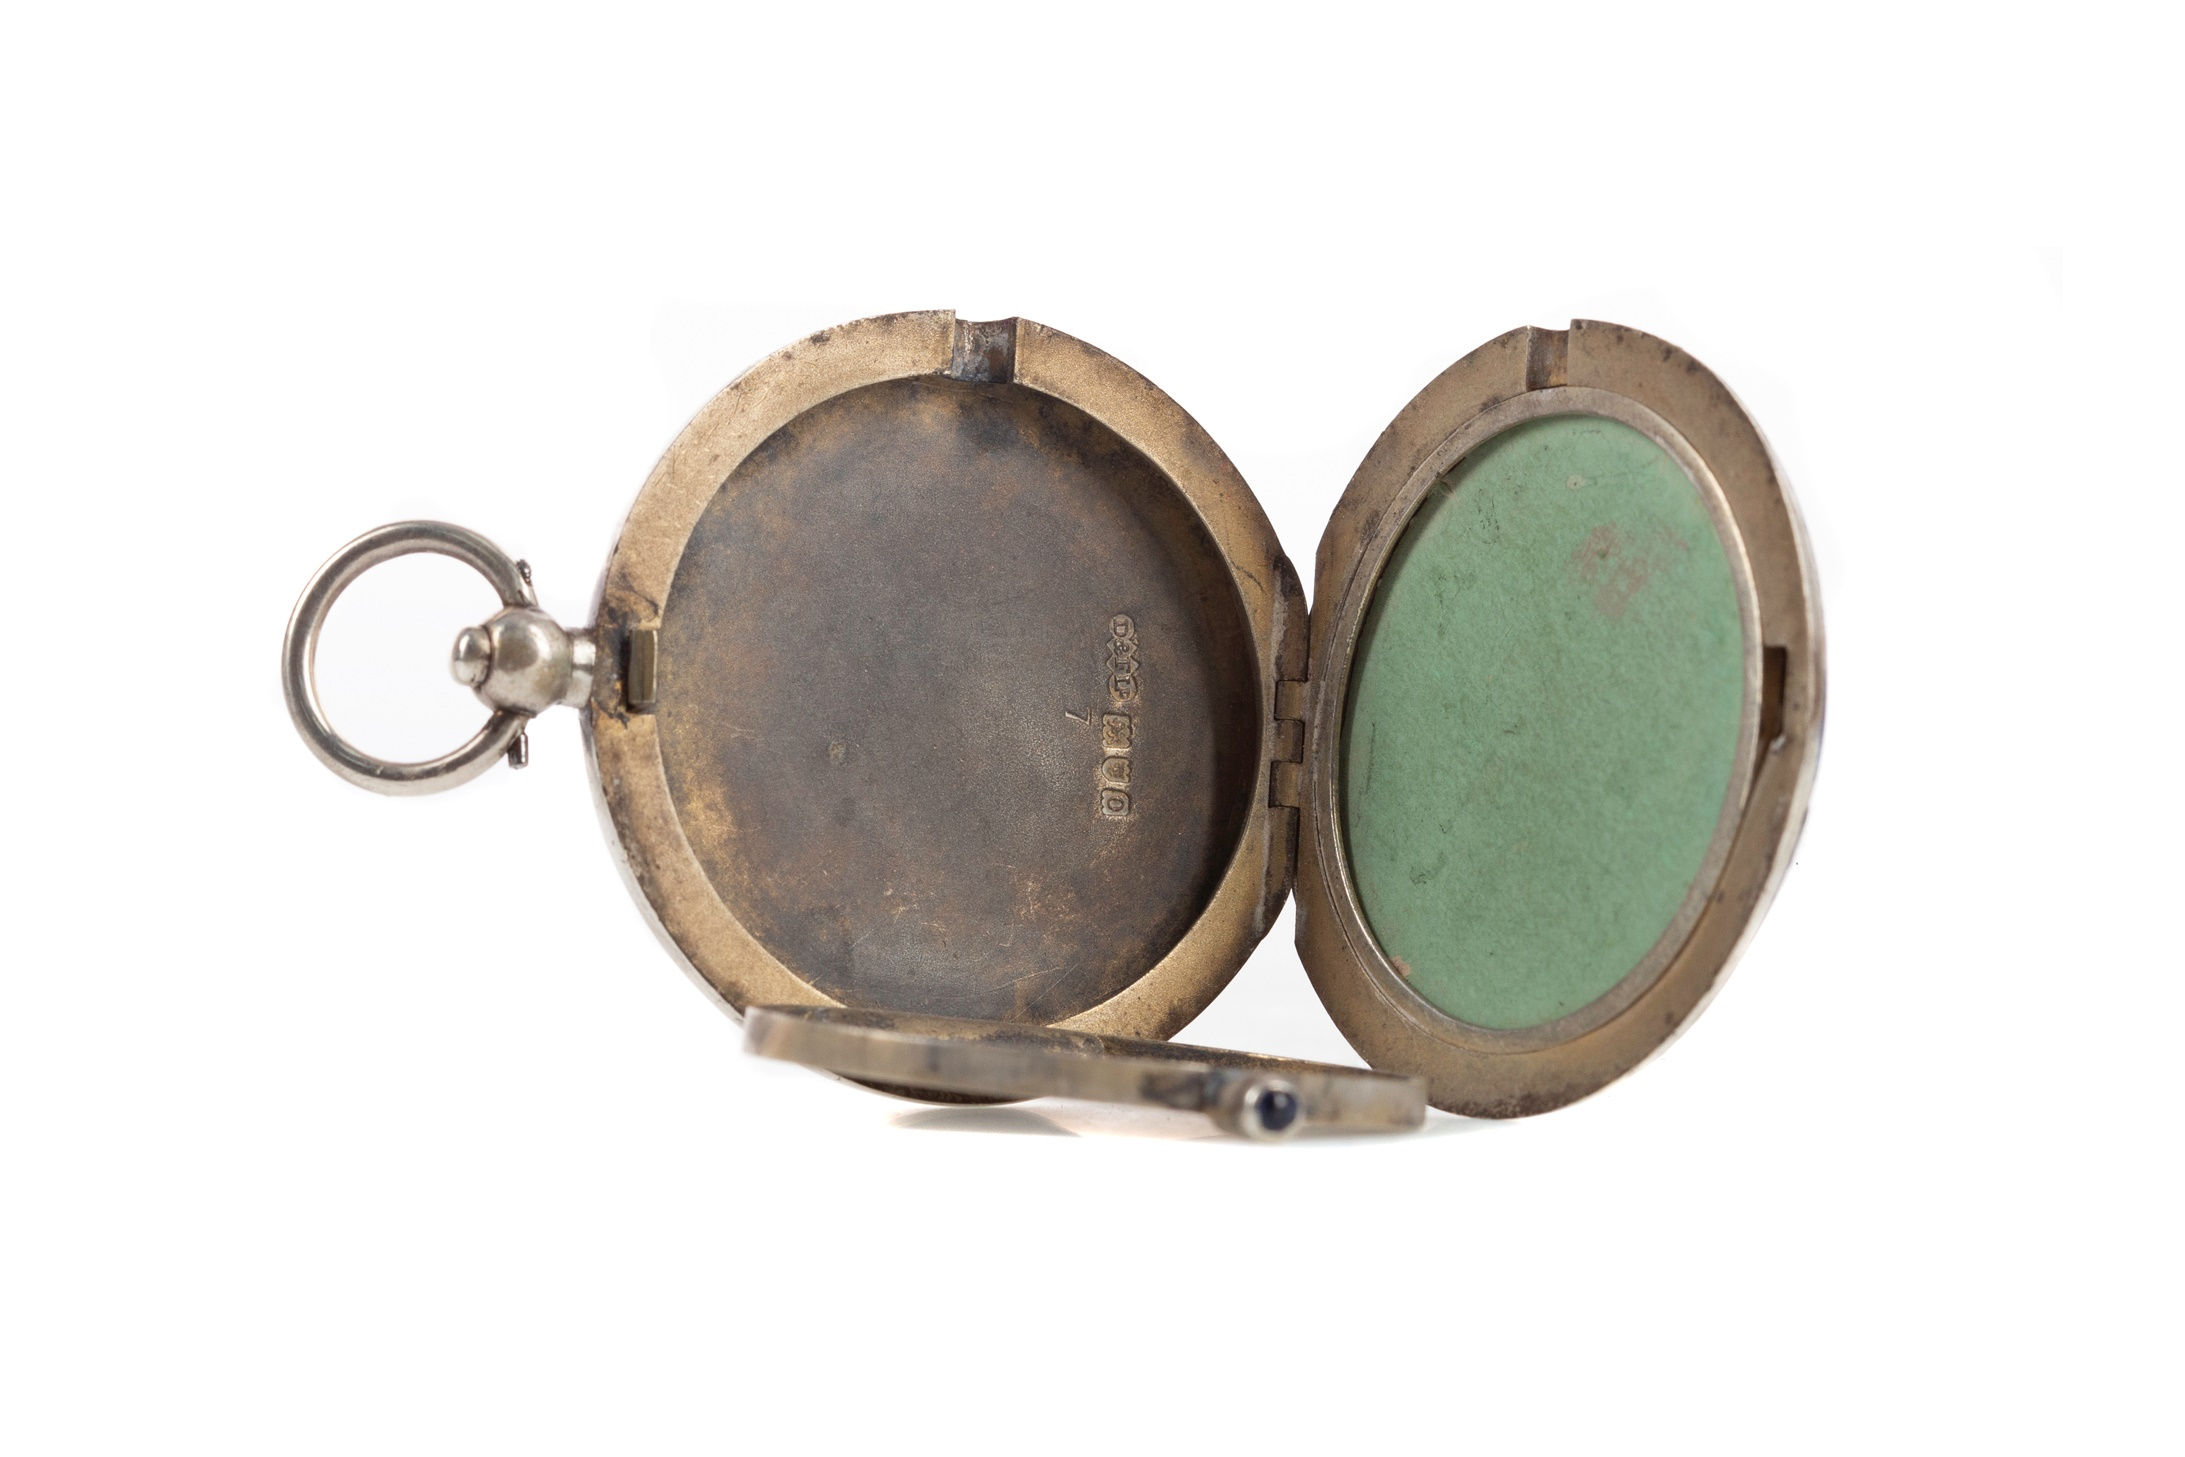 AN EDWARDIAN SILVER AND GUILLOCHE ENAMEL COMPACT - Image 2 of 2